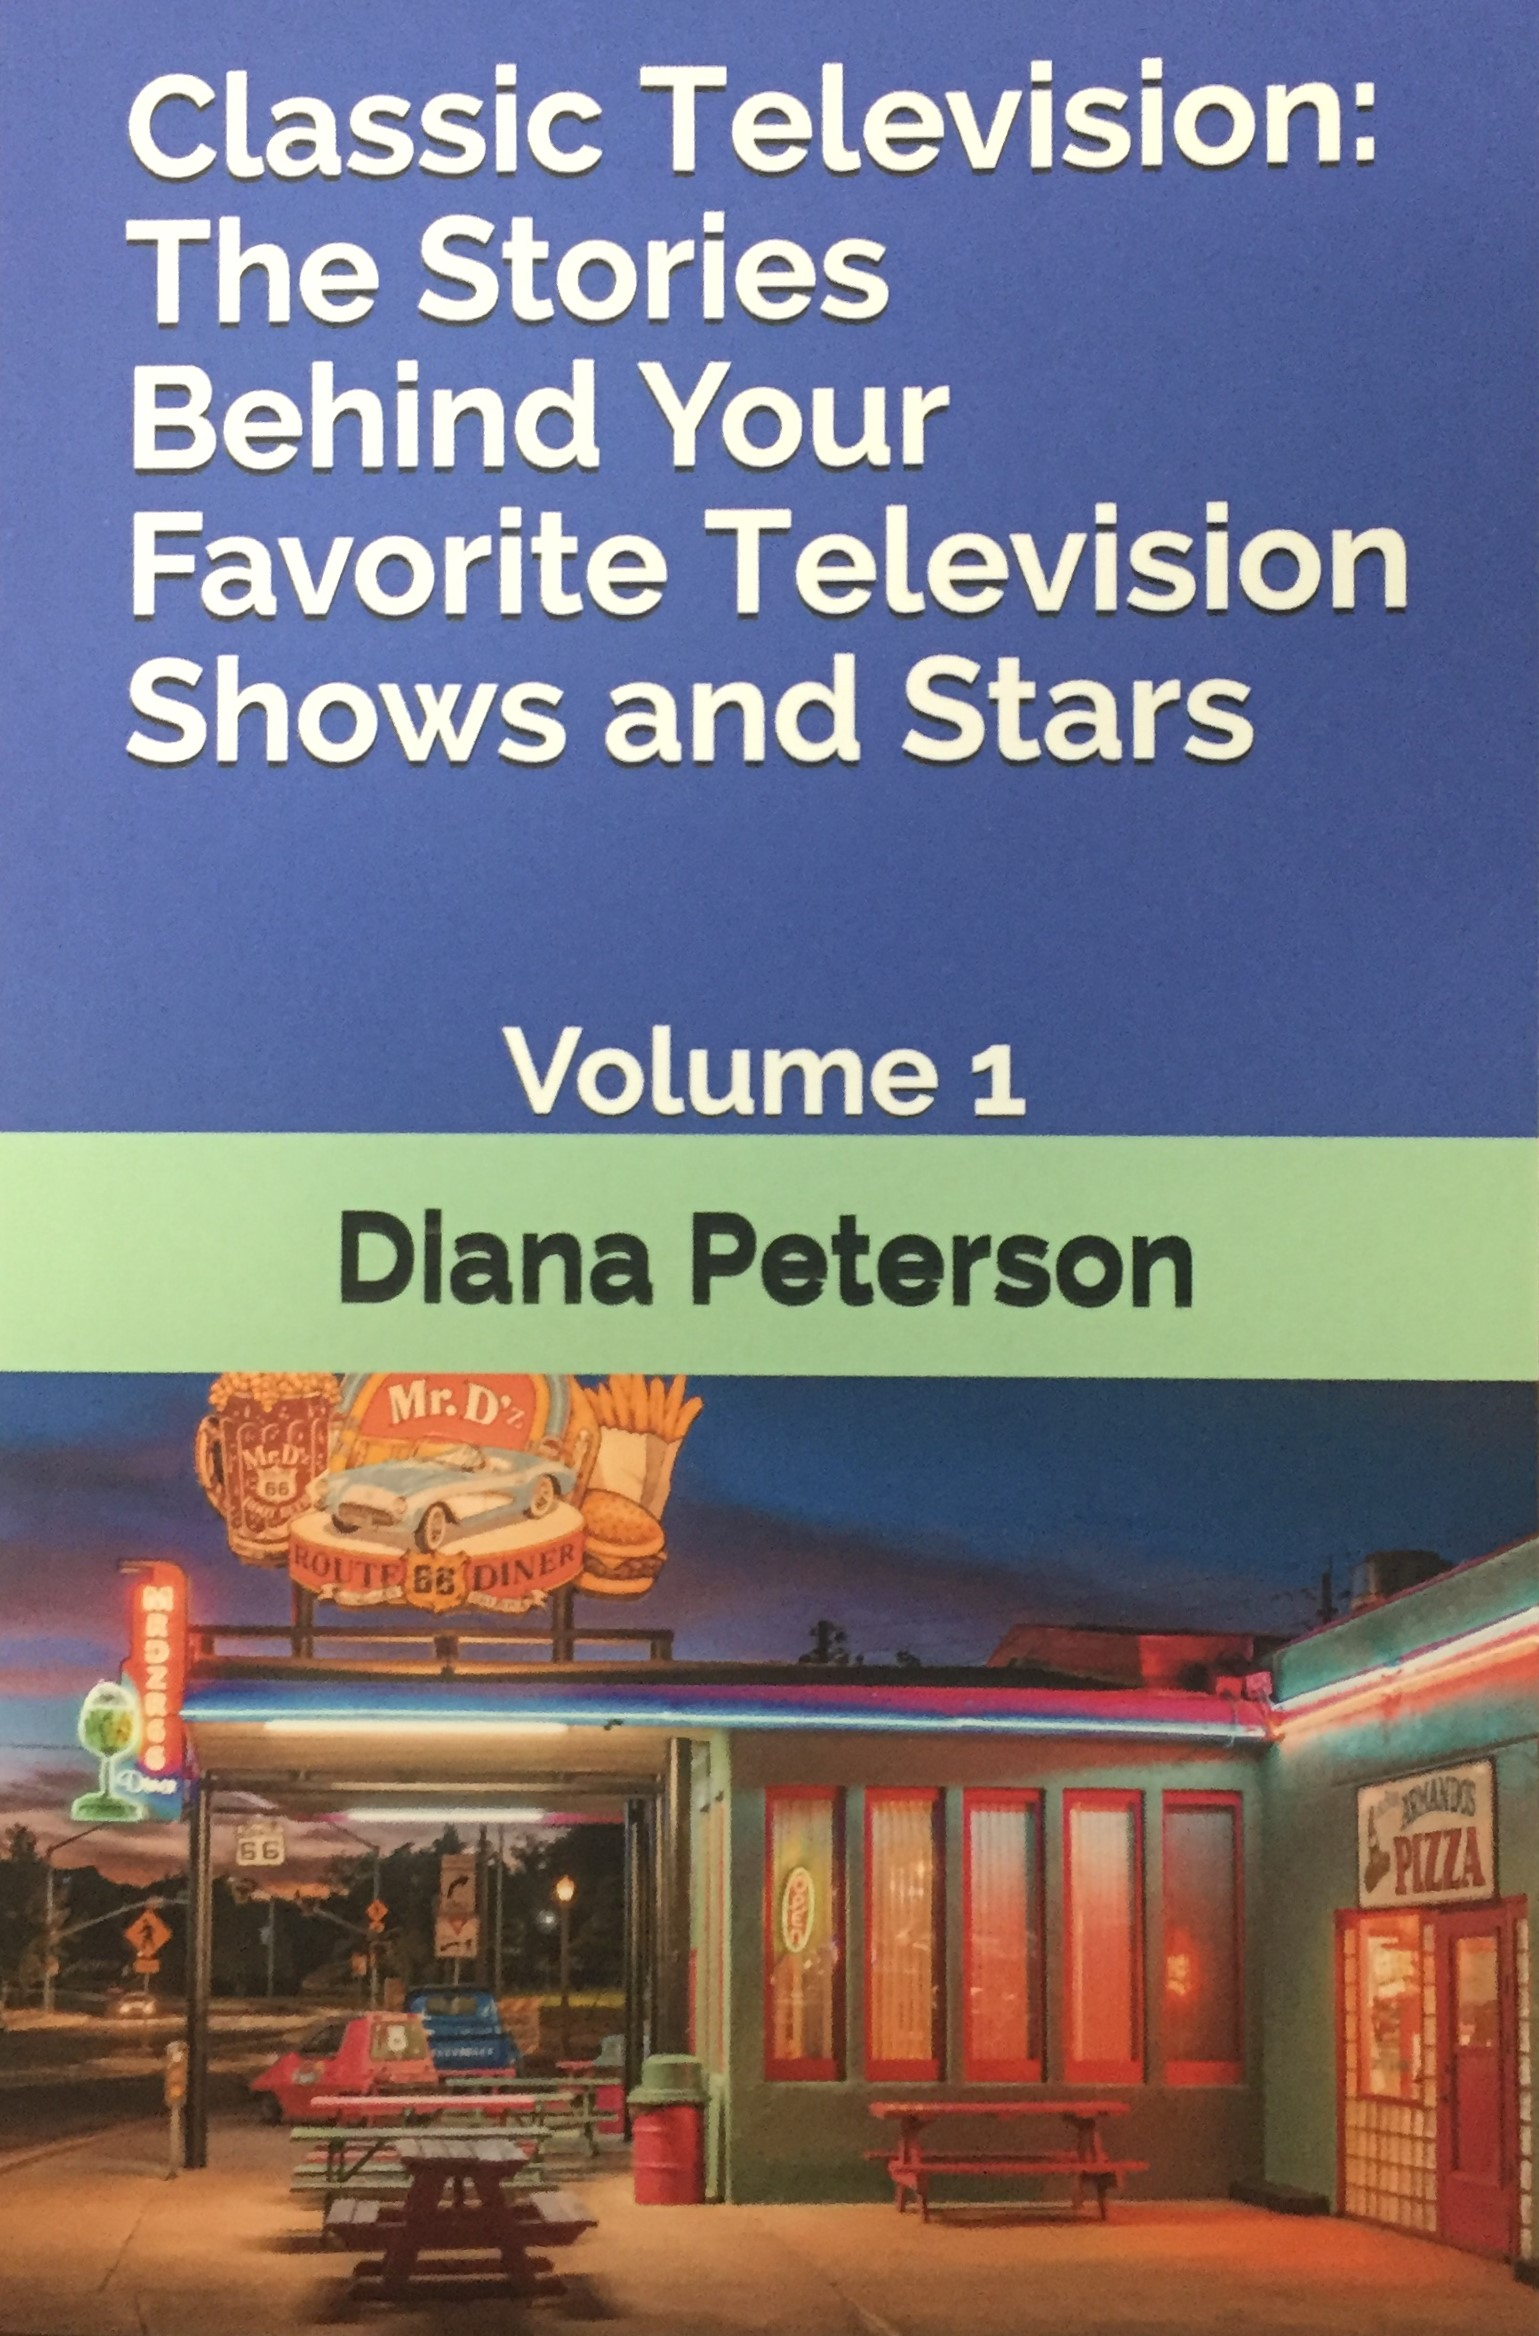 Classic Television: The Stories Behind Your Favorite Television Shows and Stars Volume 1